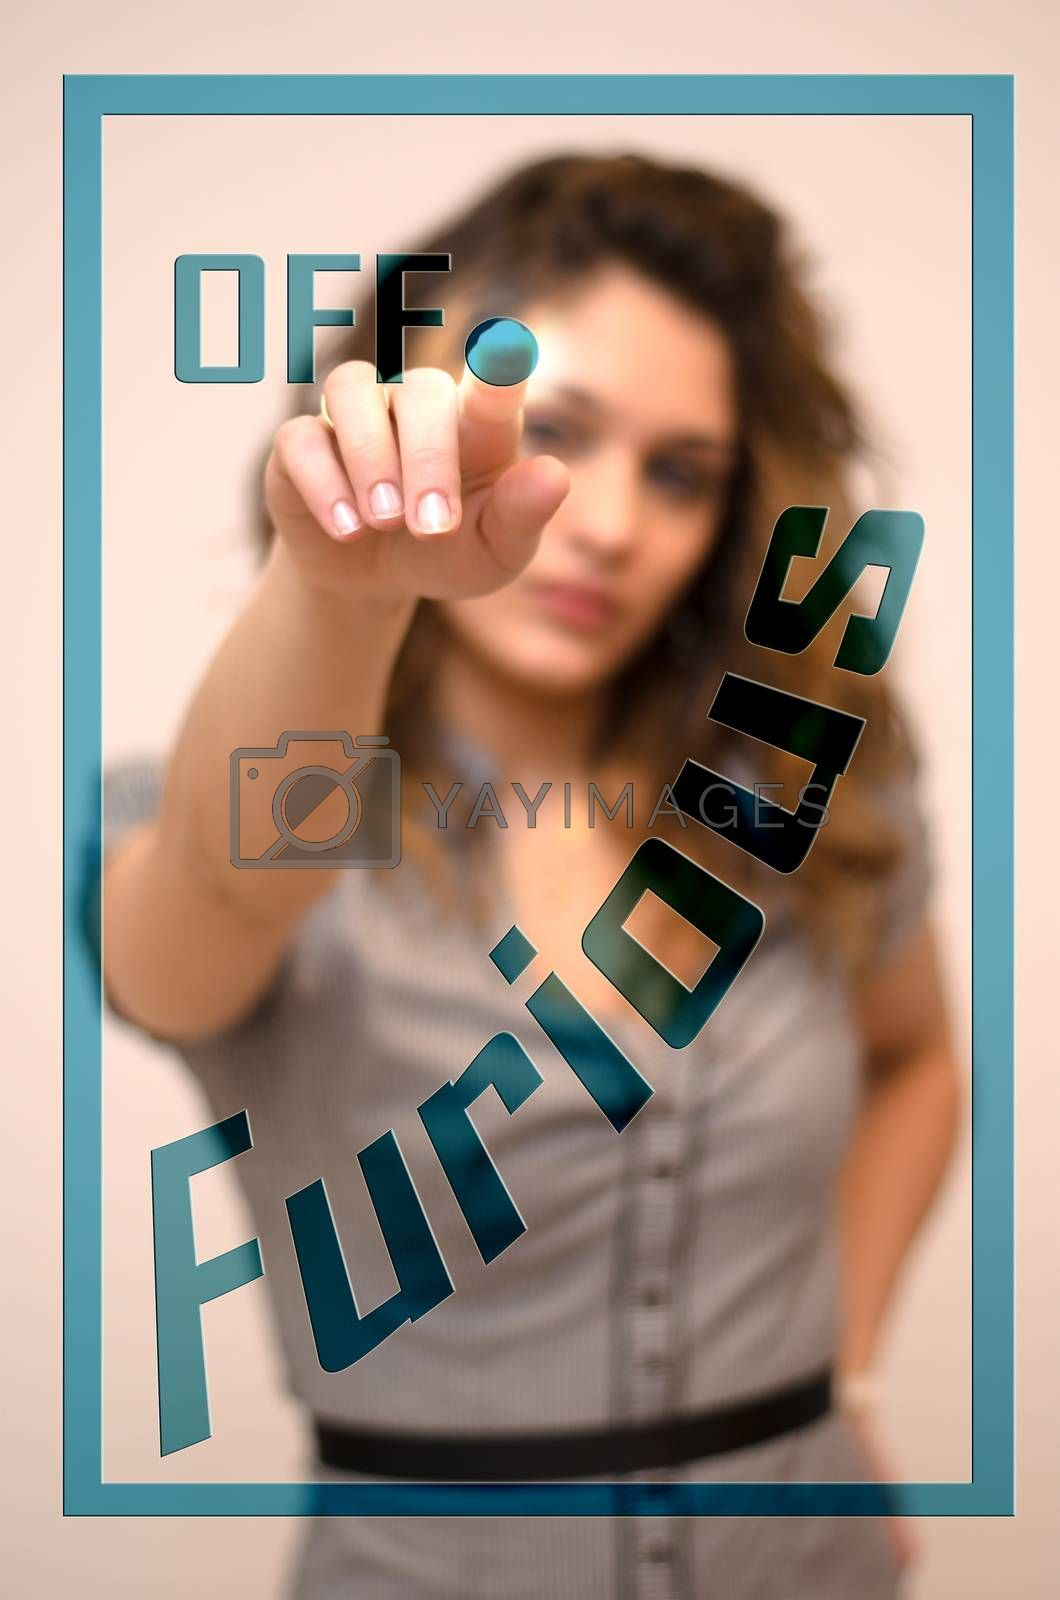 Royalty free image of anger management, turn off Furious  by vepar5